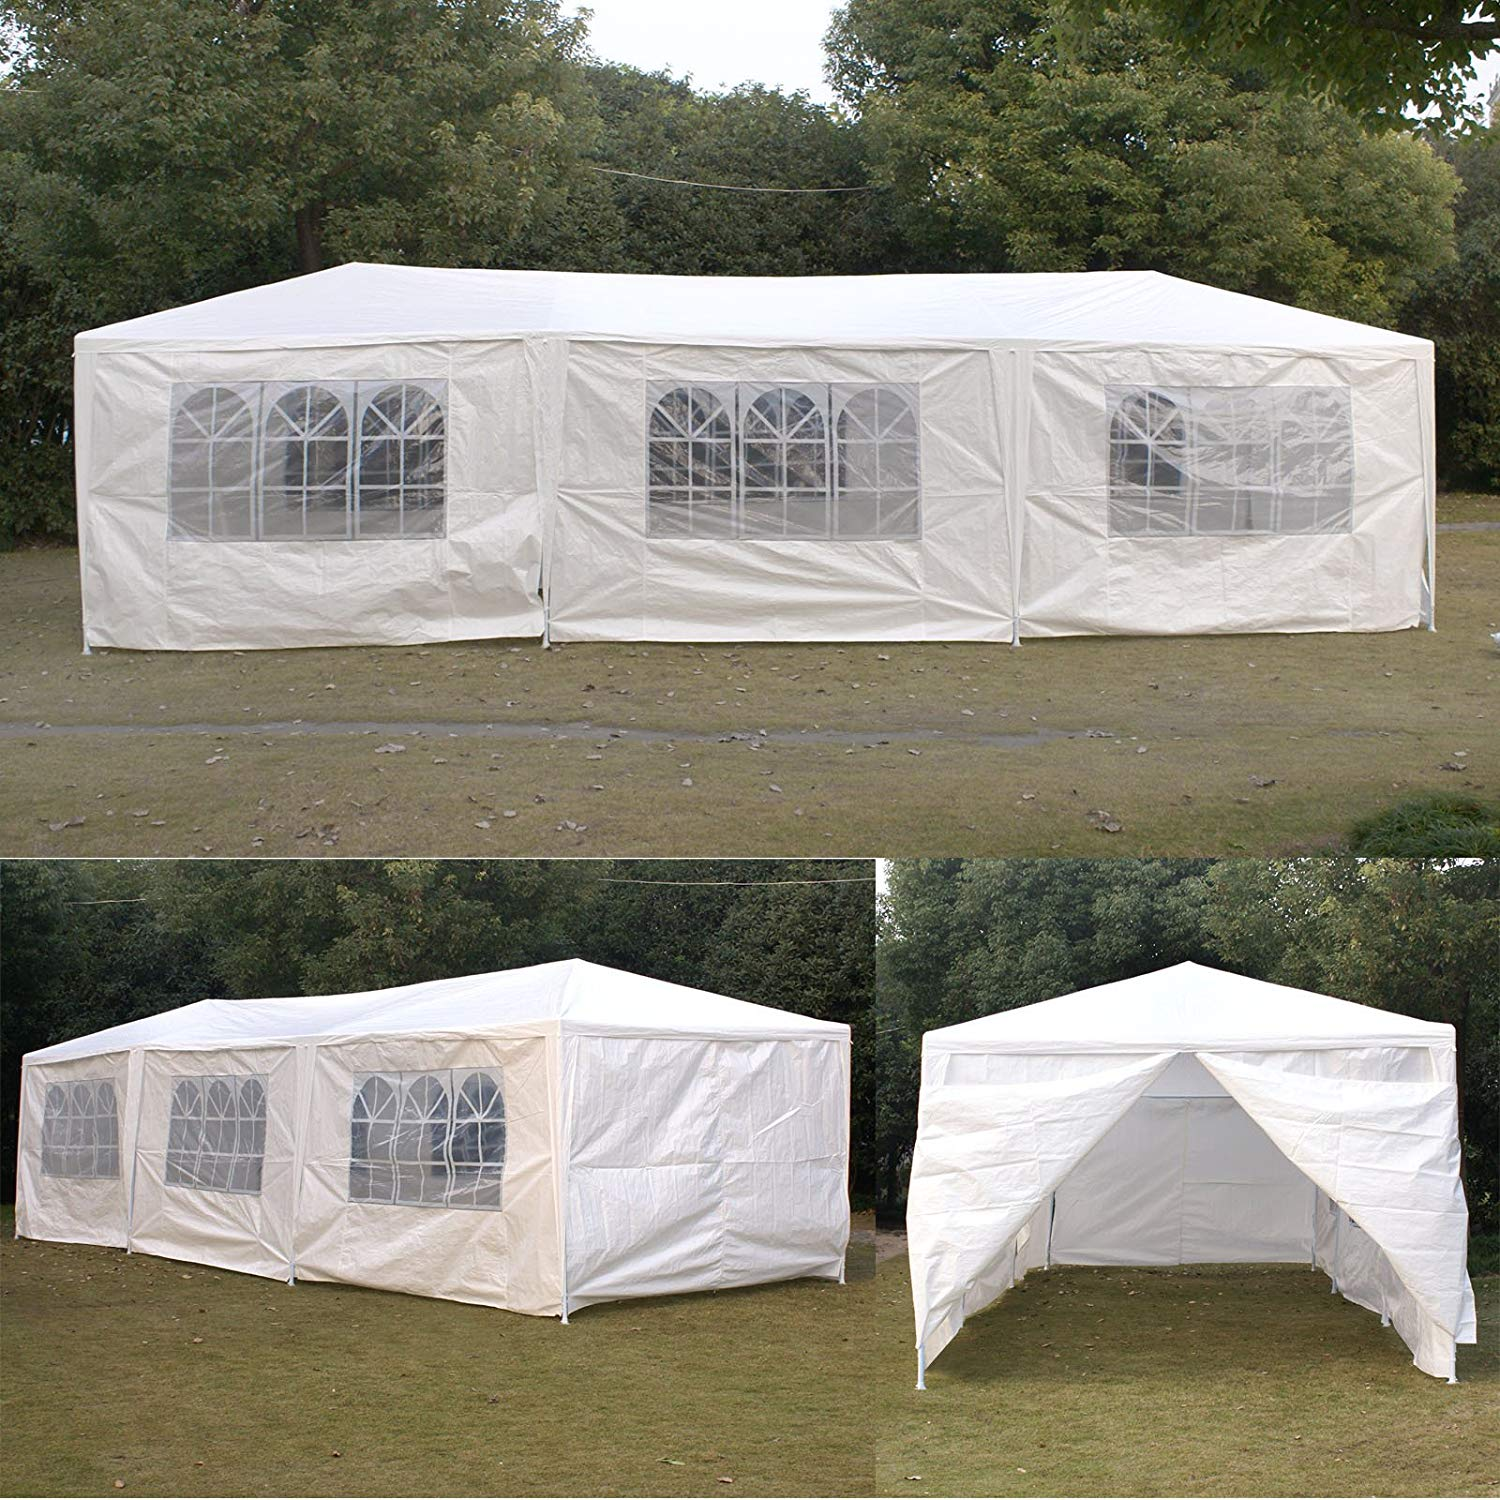 SmartXChoices 10ft x 30ft White Gazebo Canopy Outdoor Heavy Duty Wedding Party Tent